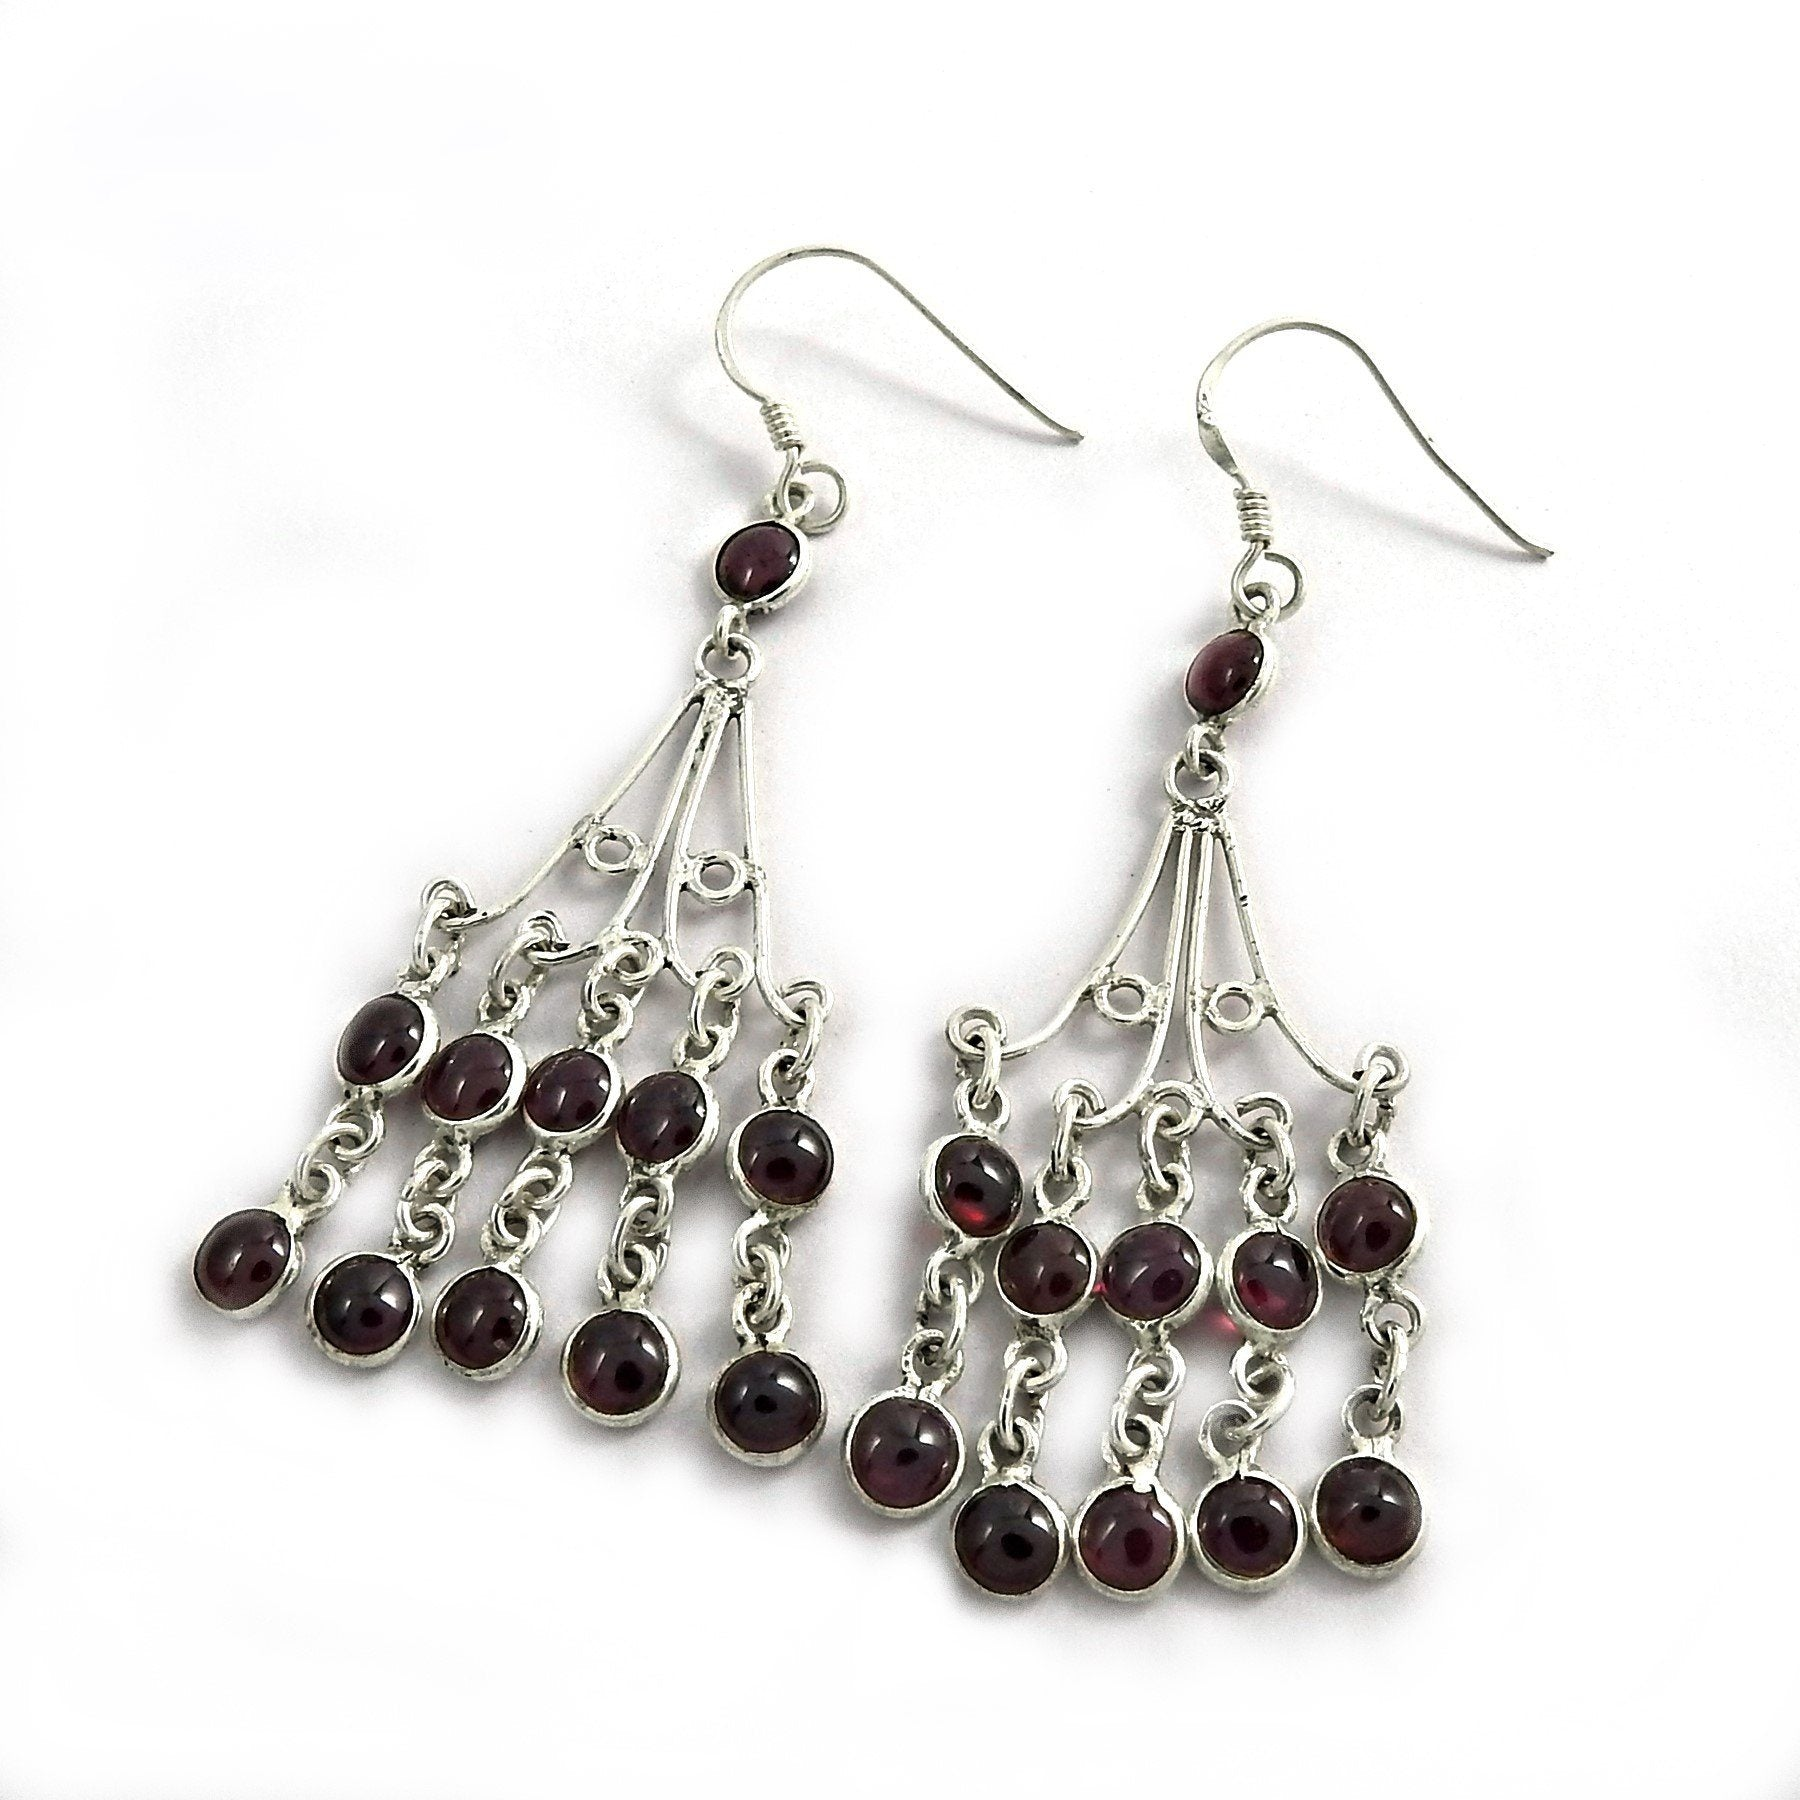 Authentic Handcrafted Garnet Gemstone Silver Earring